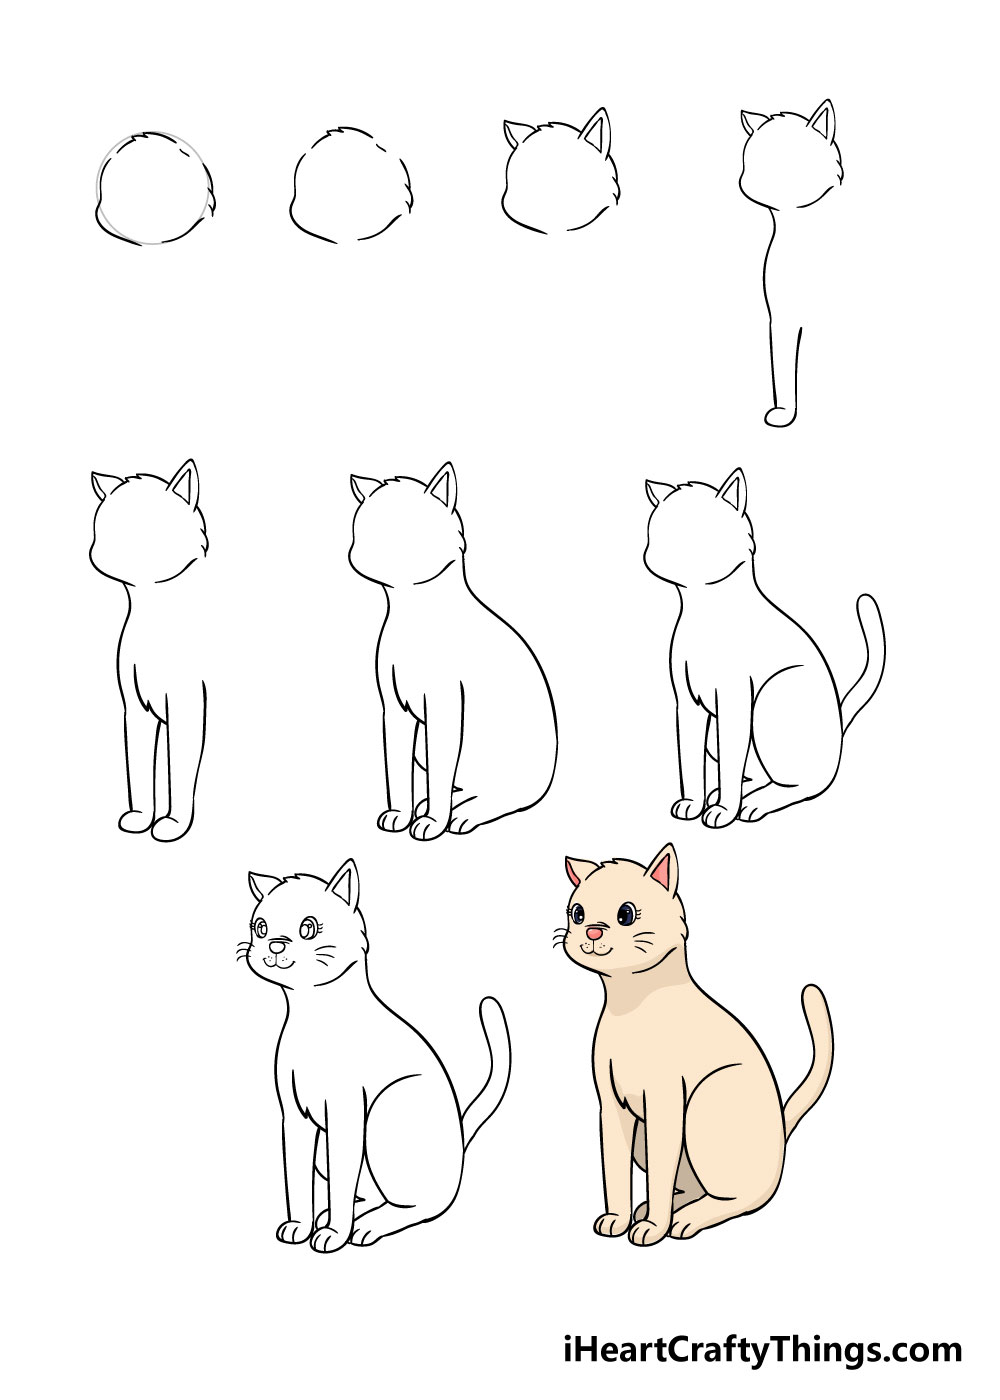 How to draw cat in 9 steps